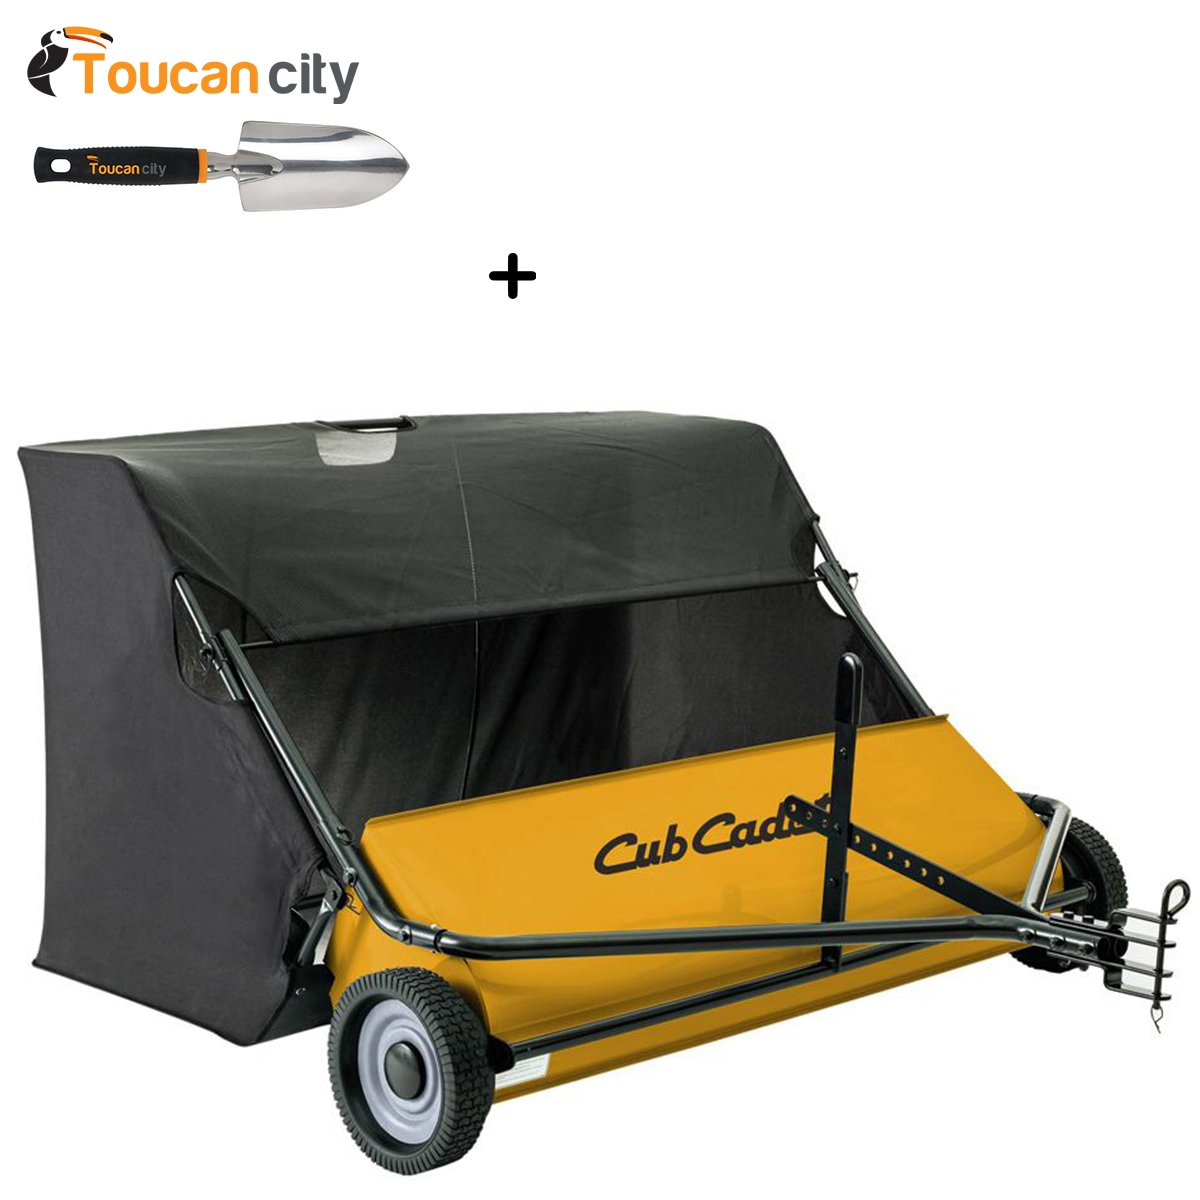 Toucan City 3 in. Softouch Hand Trowel and Cub Cadet 50 in. Tow-Behind Lawn Sweeper 19A30032100